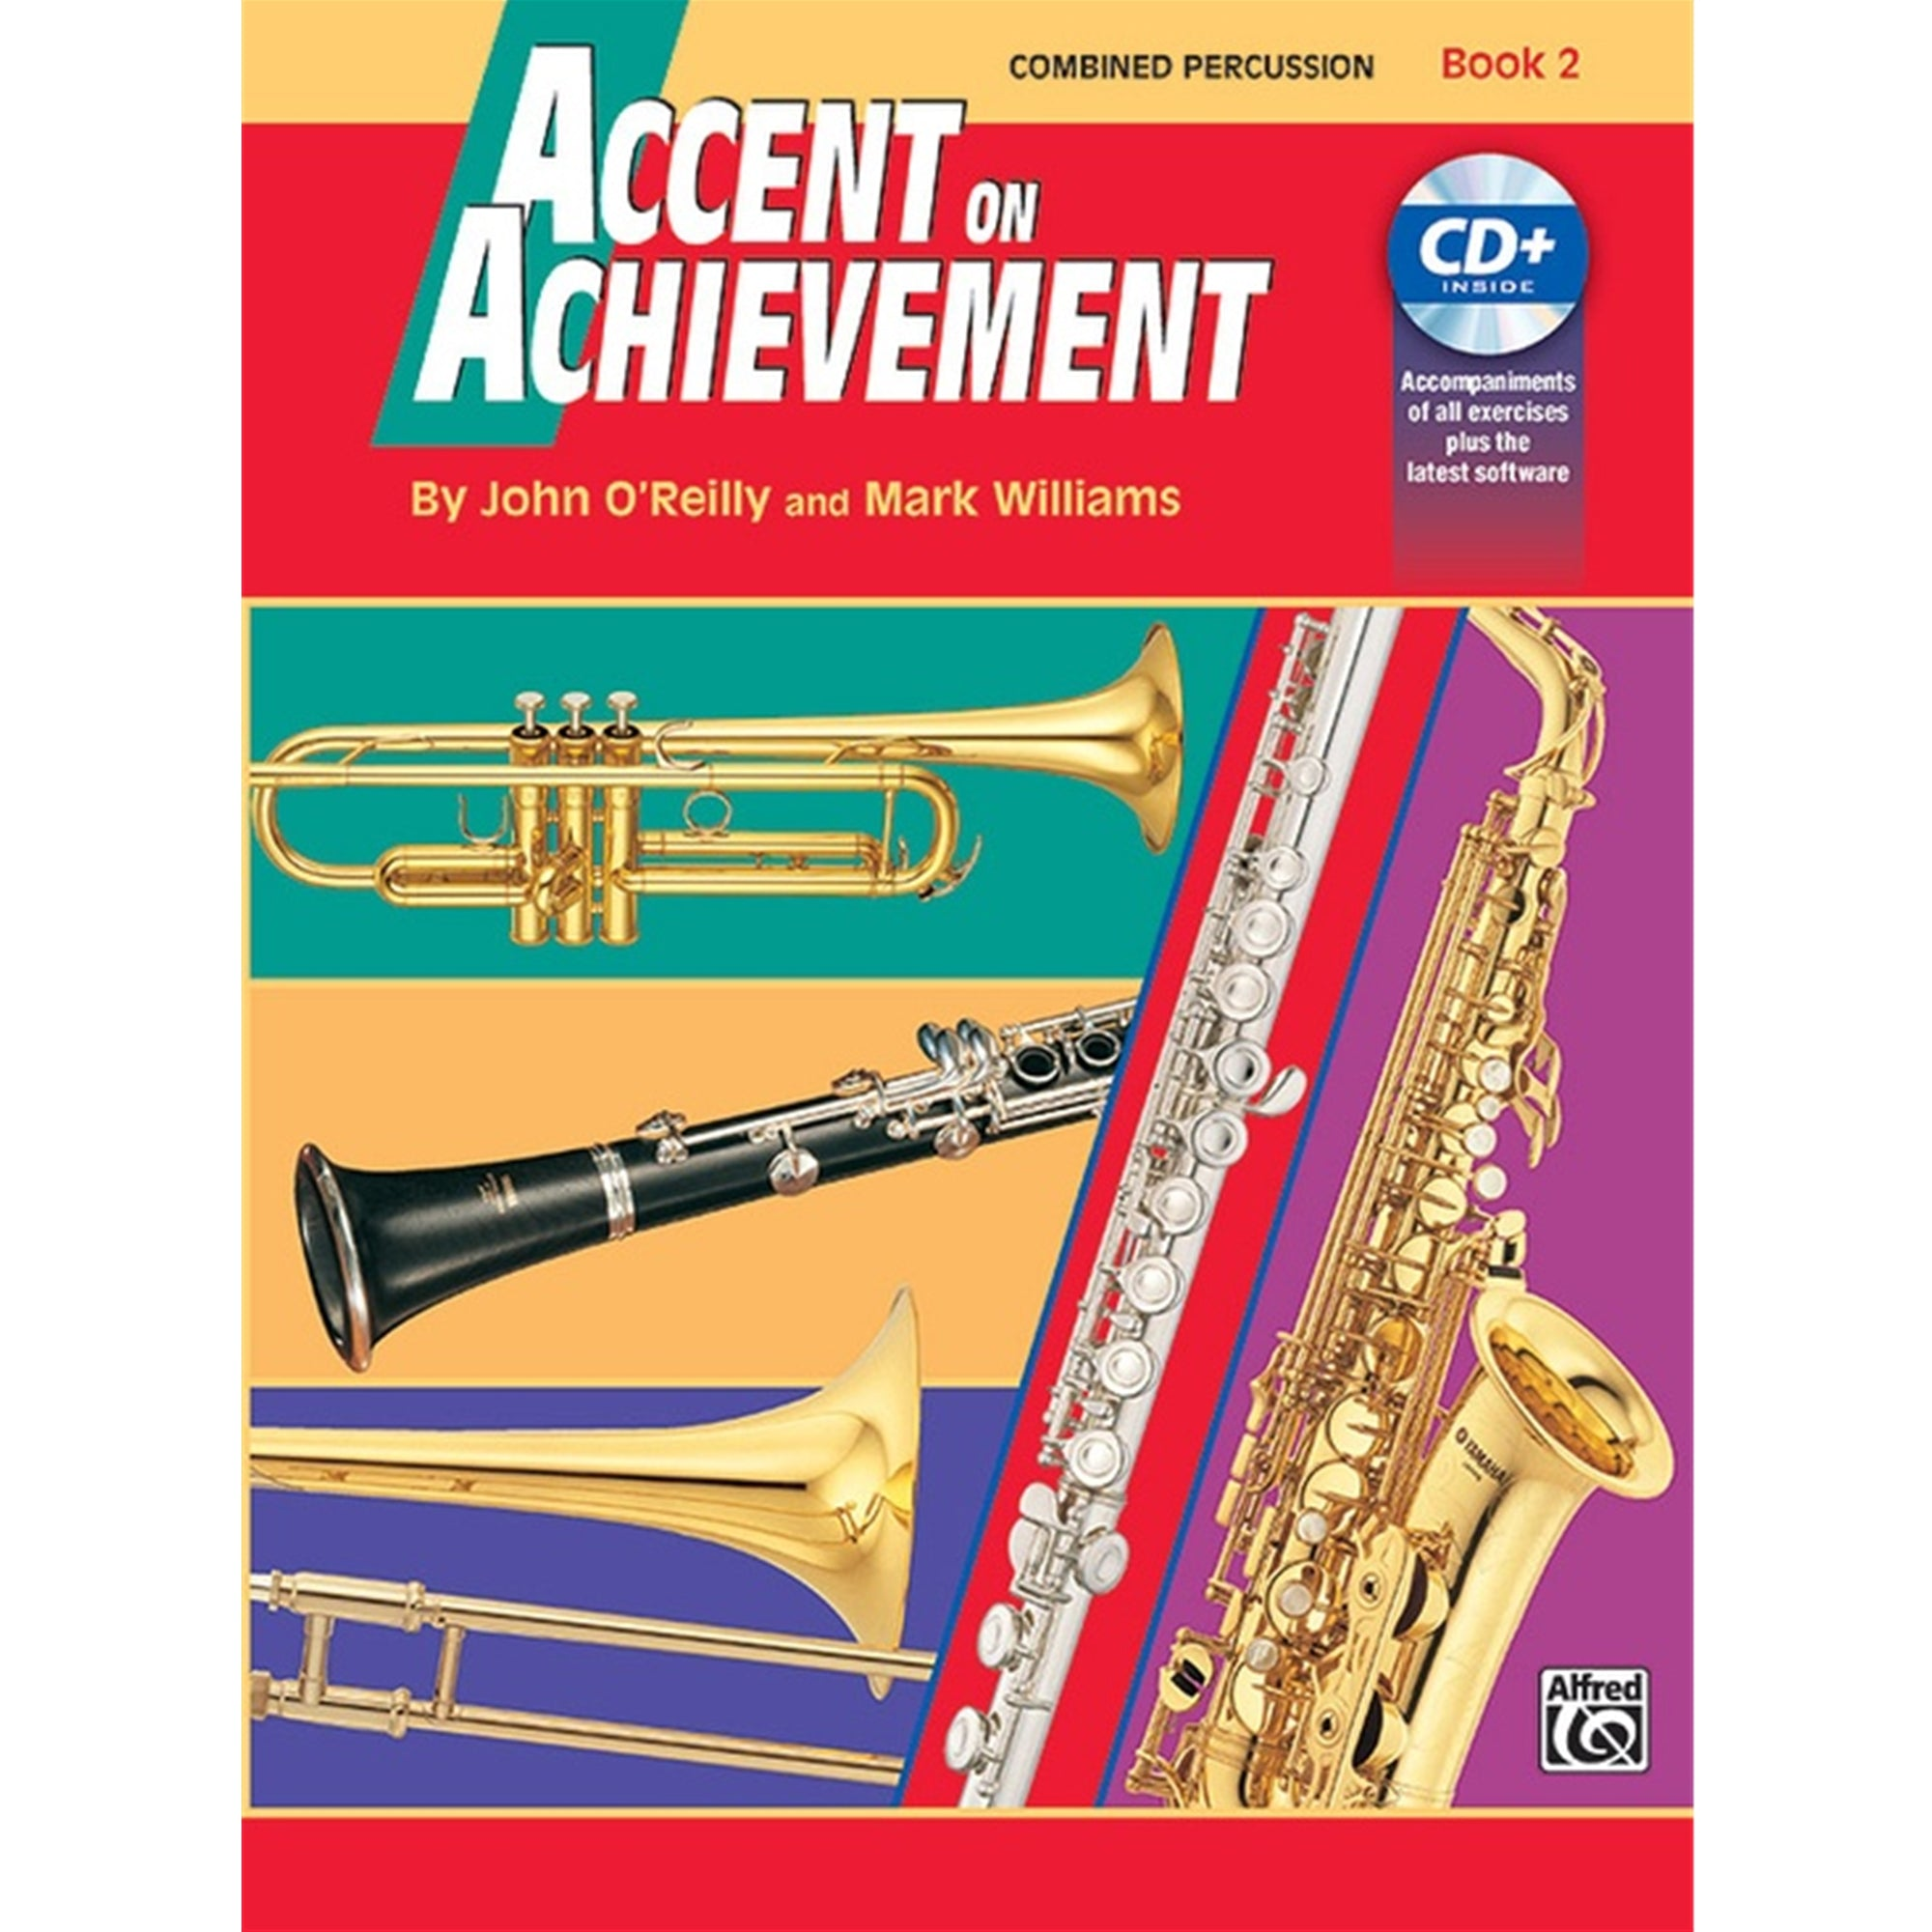 ALFRED 18273 Accent on Achievement Combined Percussion Book 2